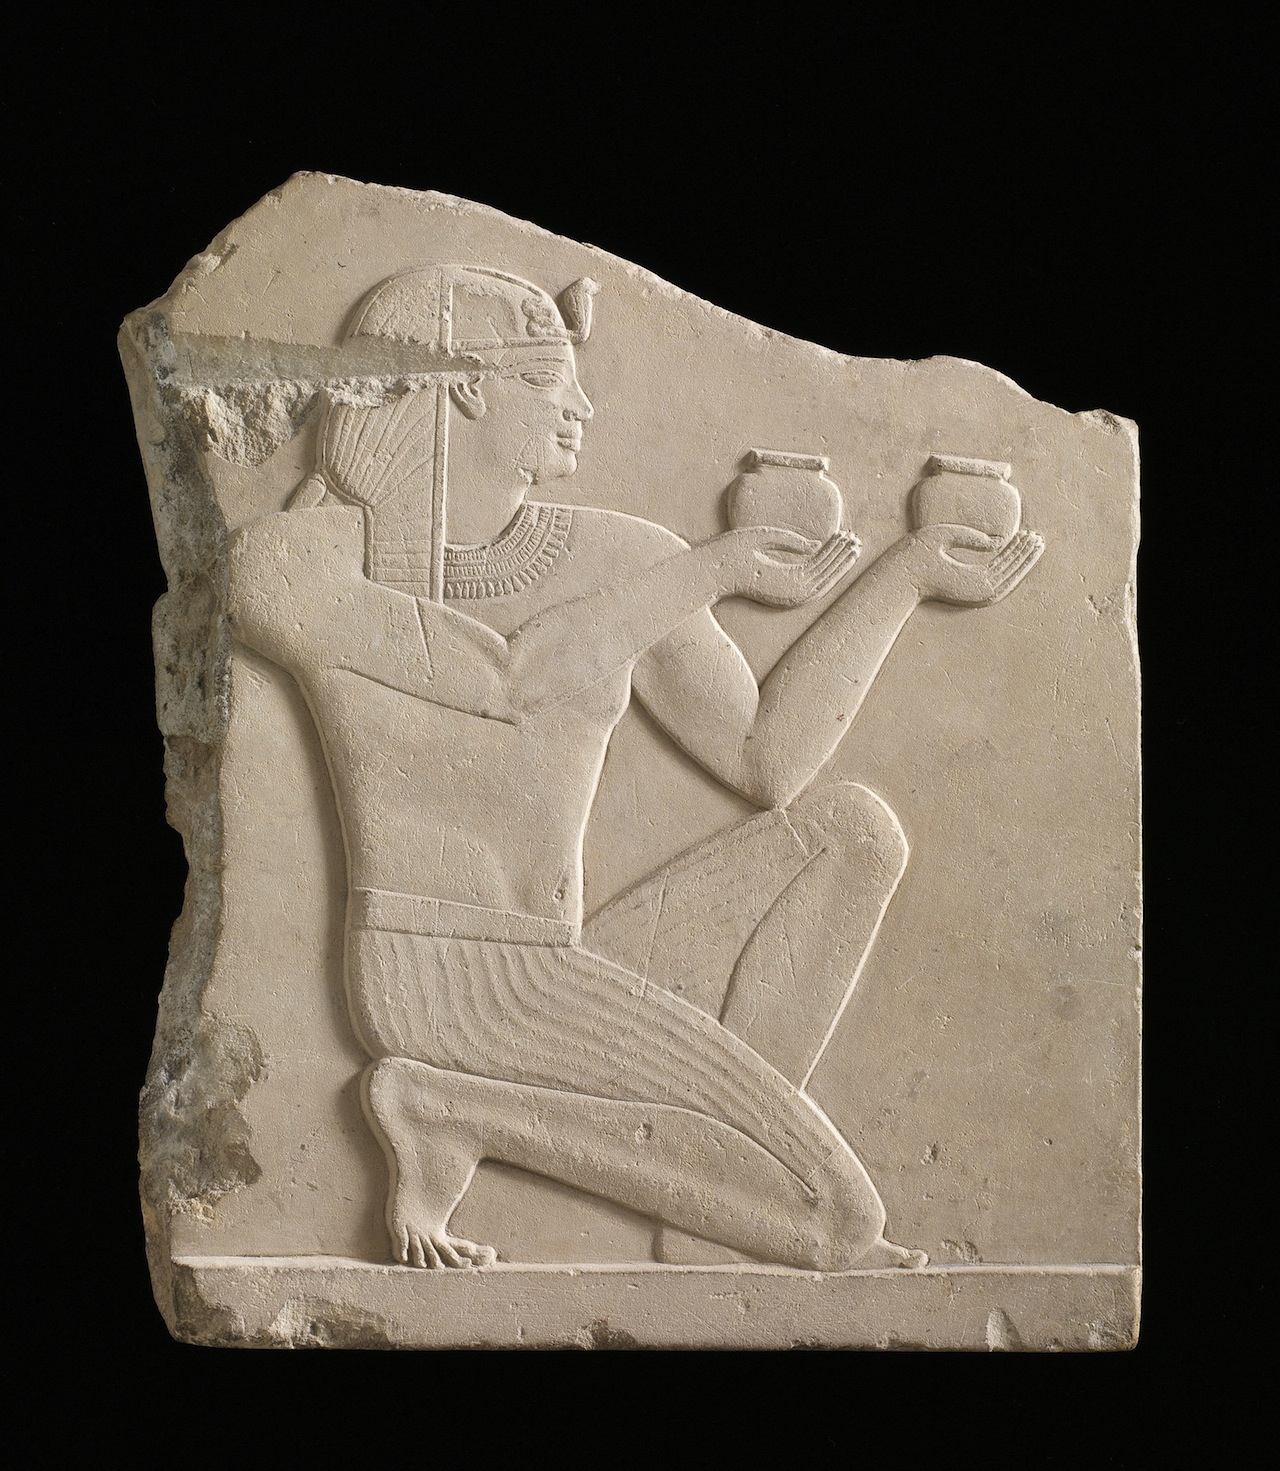 A plaque depicting a king offering wine, Egypt, possibly Ptolemaic dynasty, 305–30 BCE